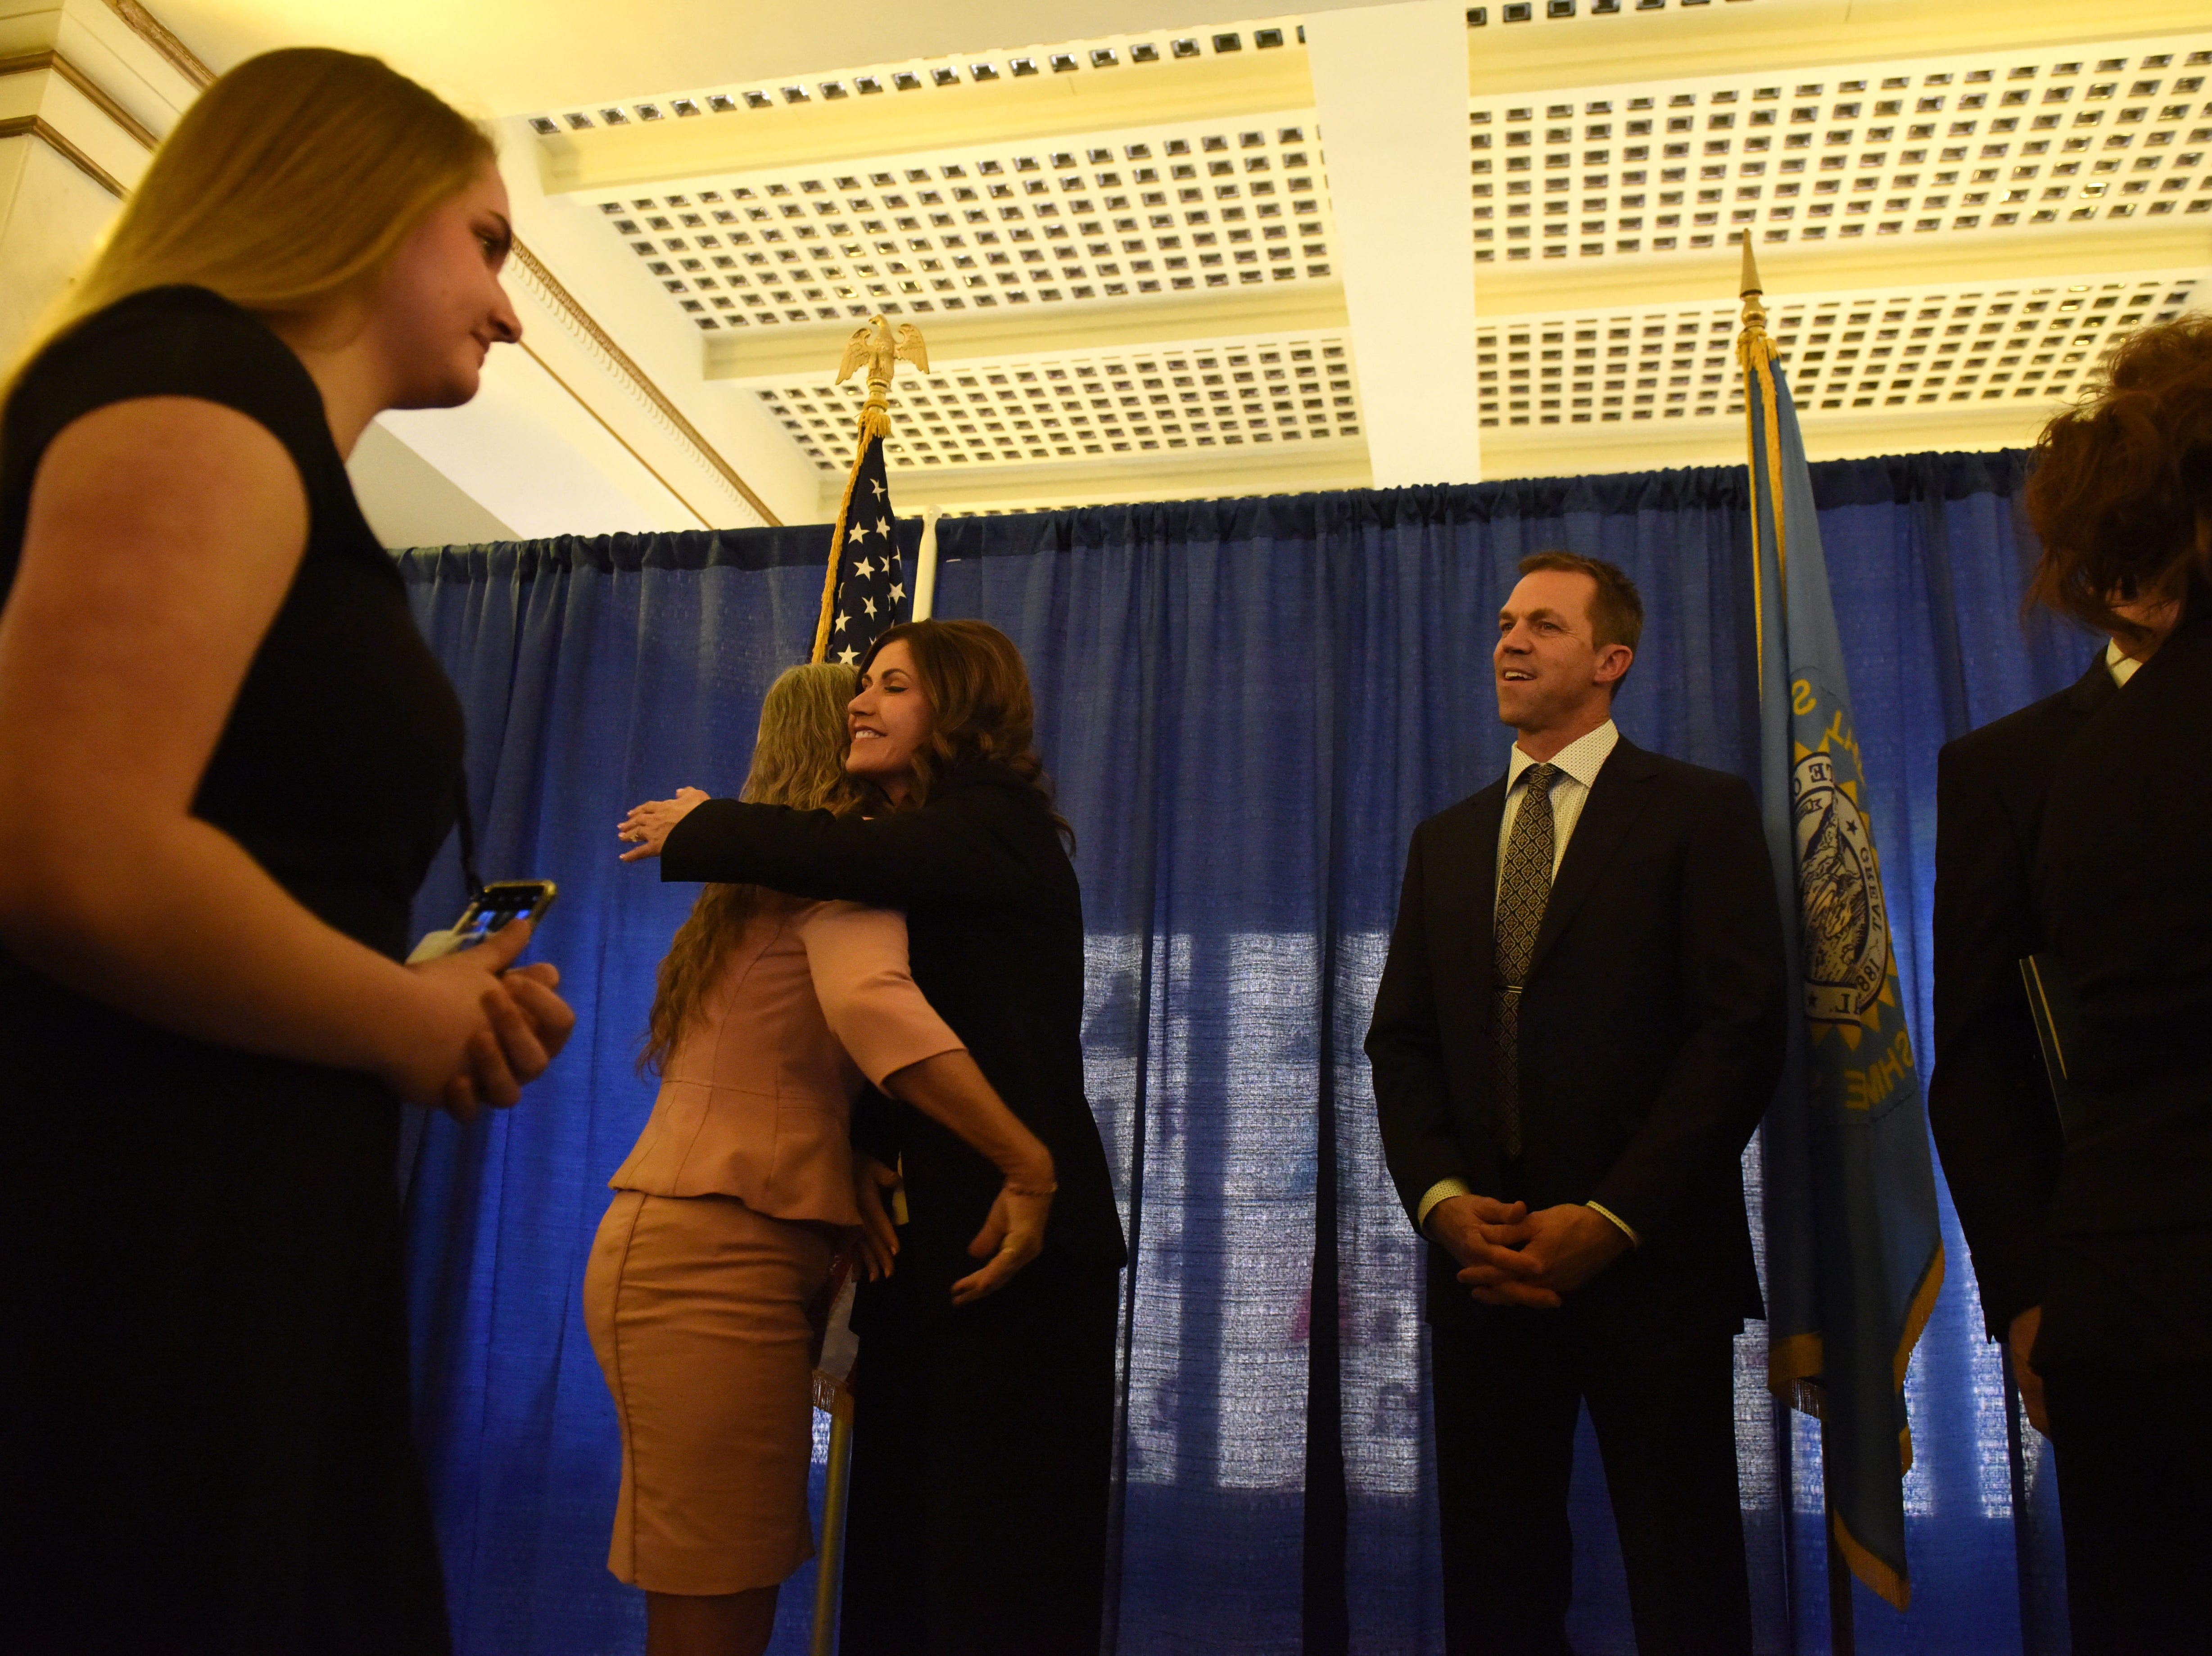 Gov. Kristi Noem hugs someone at the receiving line Saturday, Jan. 5, 2019, after being sworn-in as South DakotaÕs 33rd and first female governor in Pierre, S.D.